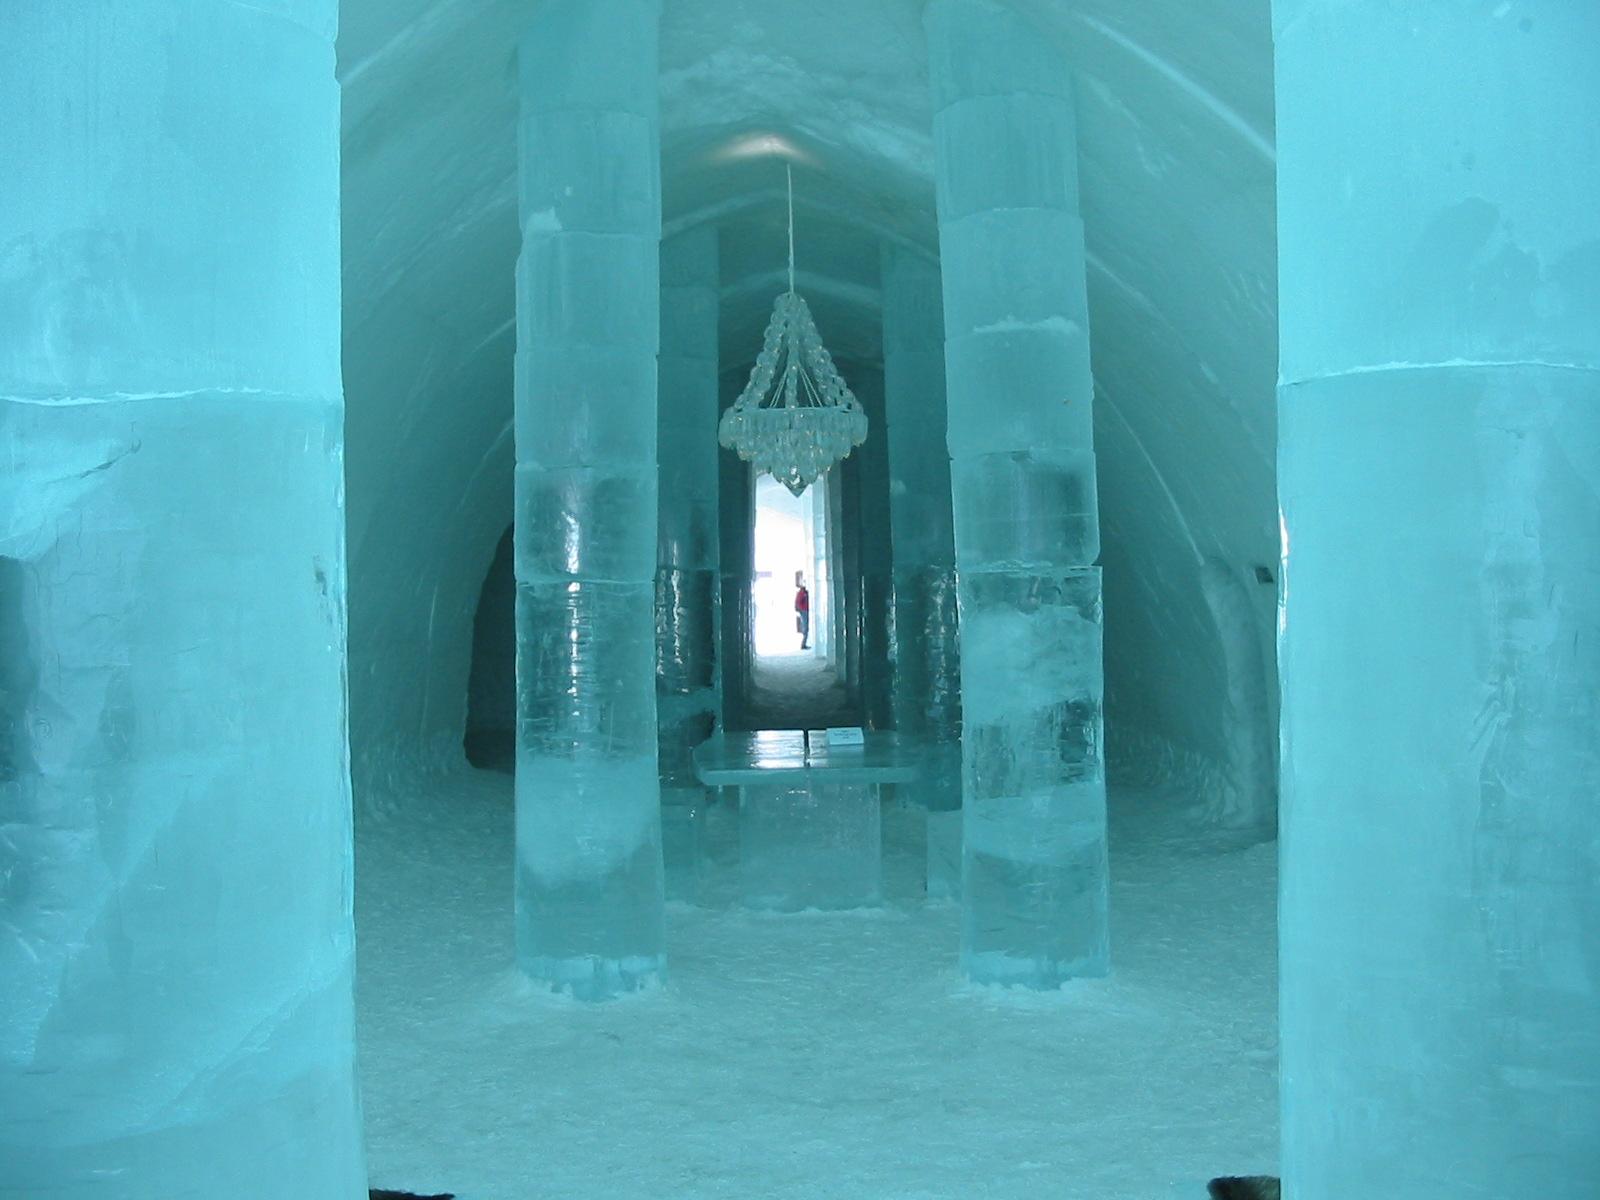 ice hotel in sweden Hotel de glace in québec city, canada 16 hotels that are so cool you'll want to stay forever find this pin and more on ice hotel - sweden by mls0407 if sweden is too far, you can head to quebec city to check out the hotel d glace.